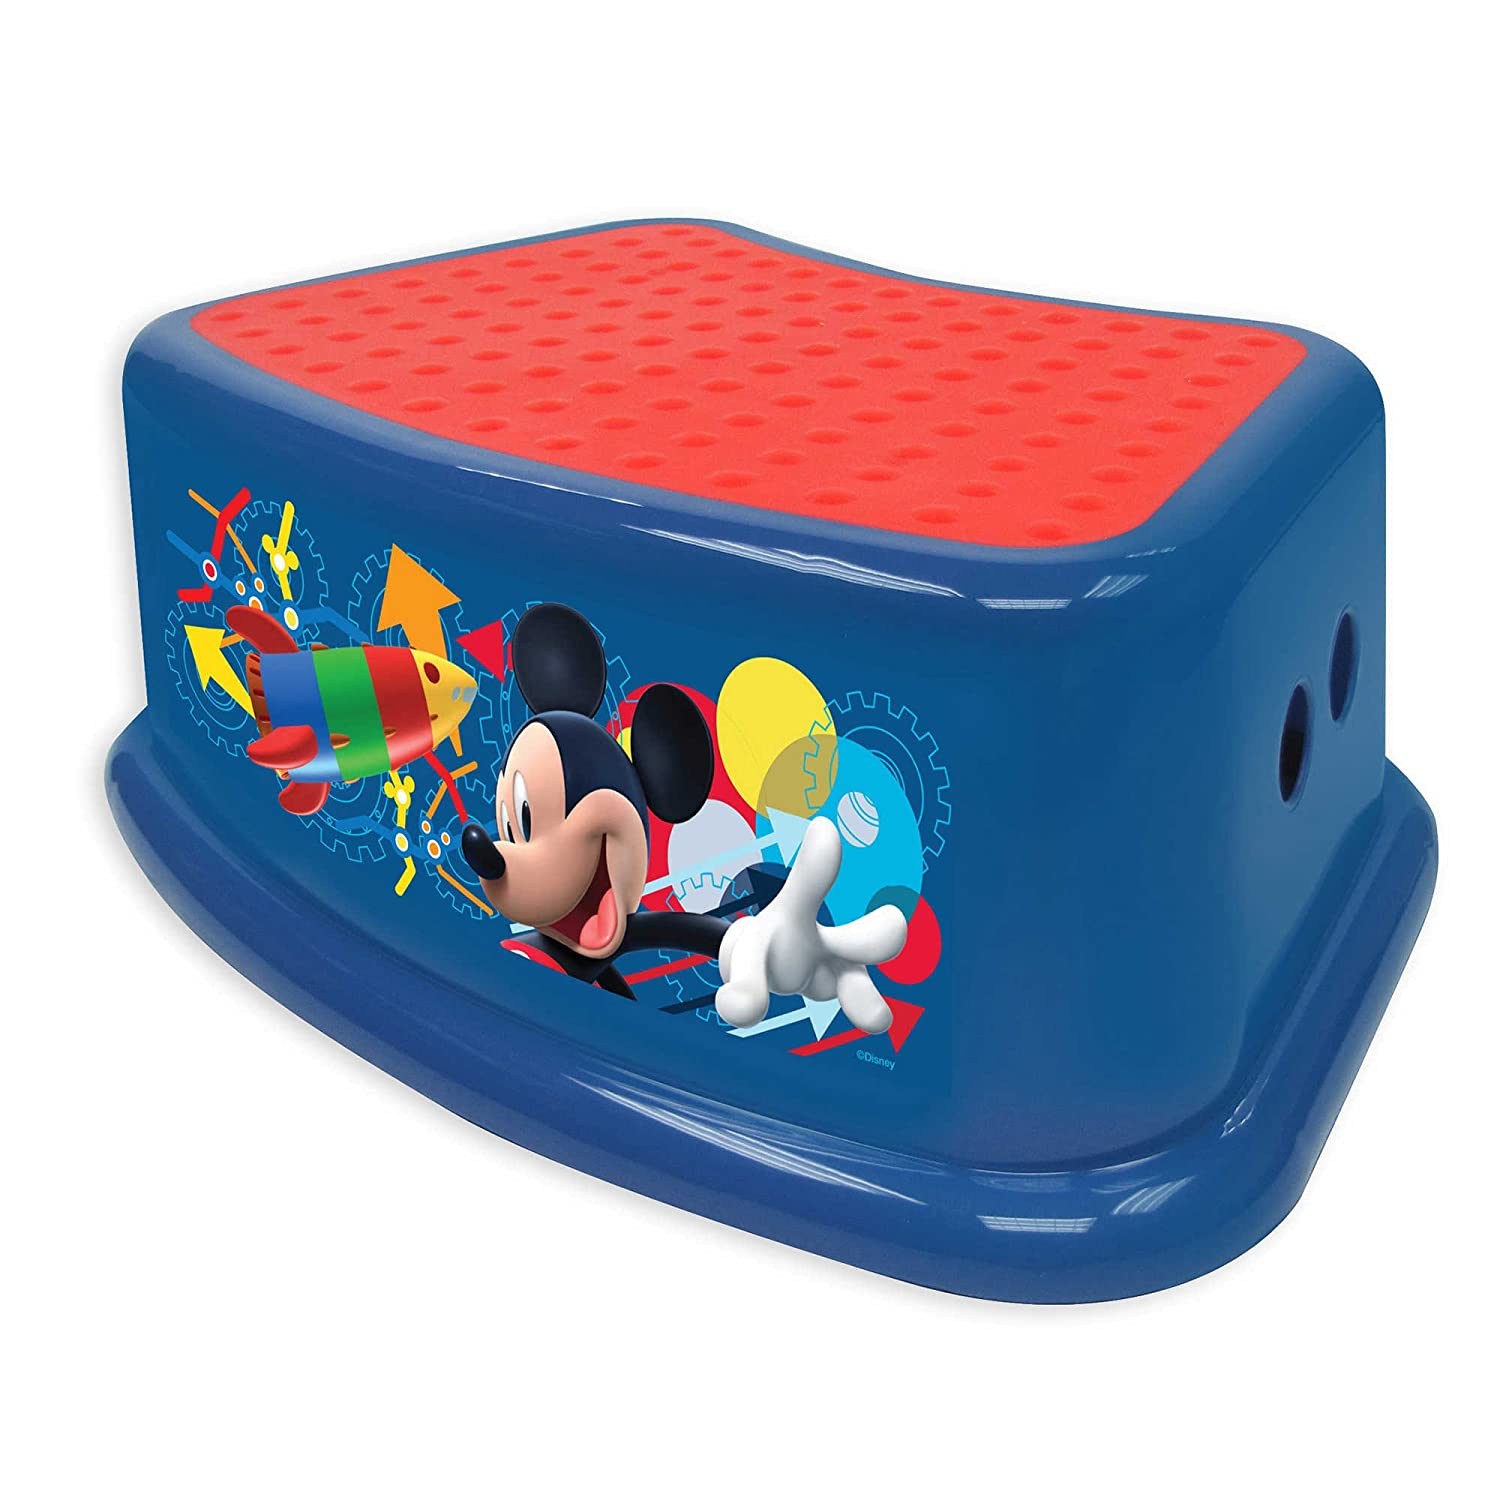 14.25' L x 9.25' W x 5.5' H Disney Mickey house Capers Step Stool in Blue Ginsey Home Solutions